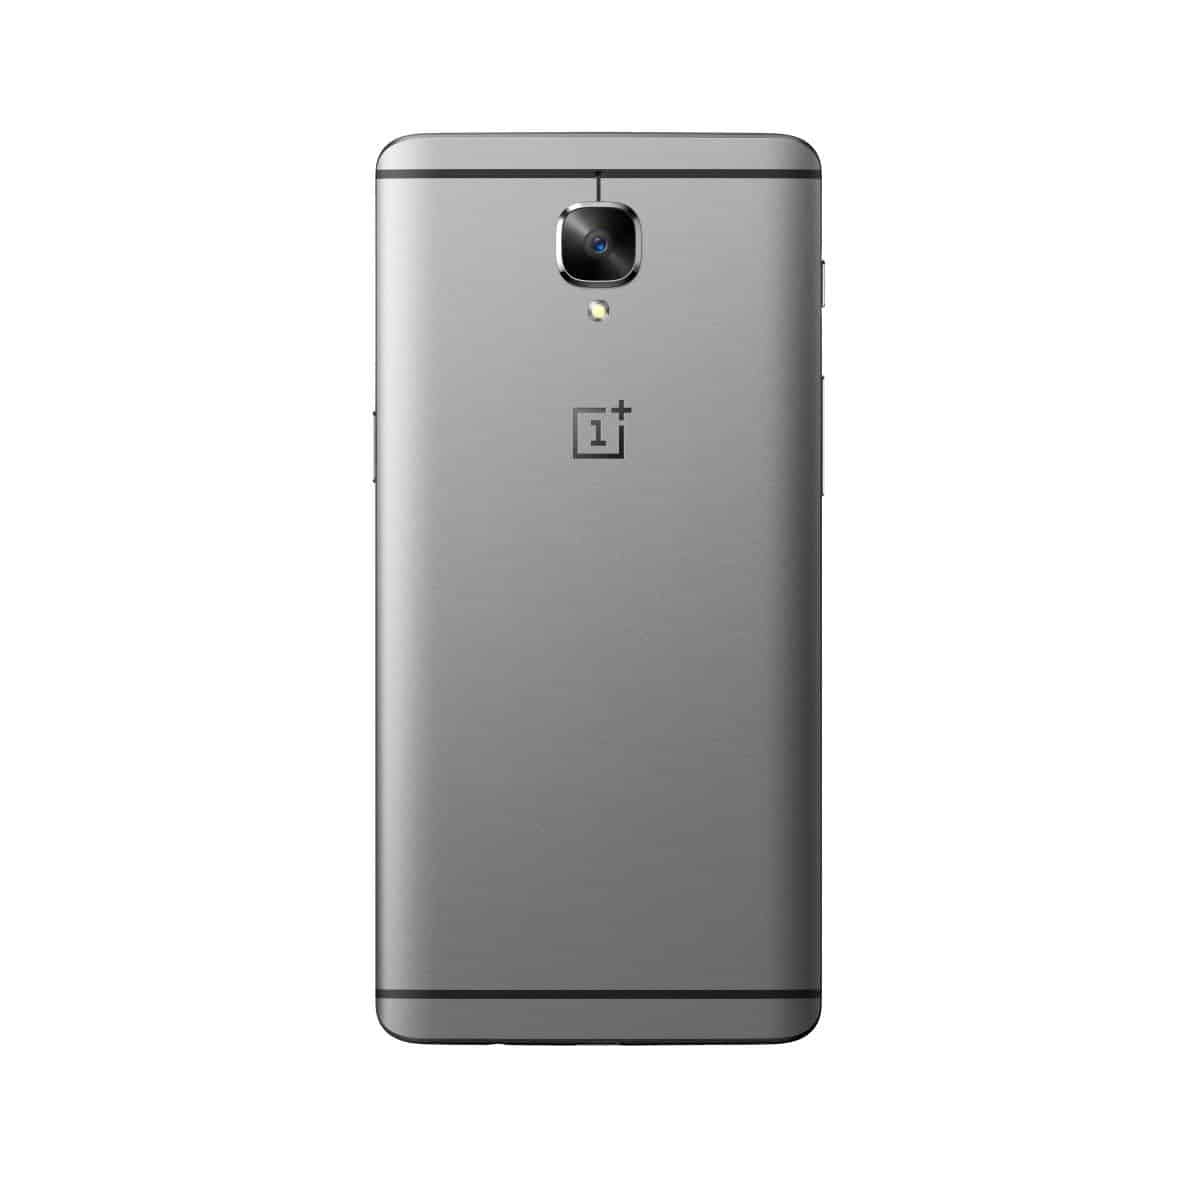 OnePlus 3 Specifications | Androidheadlines.com Oneplus